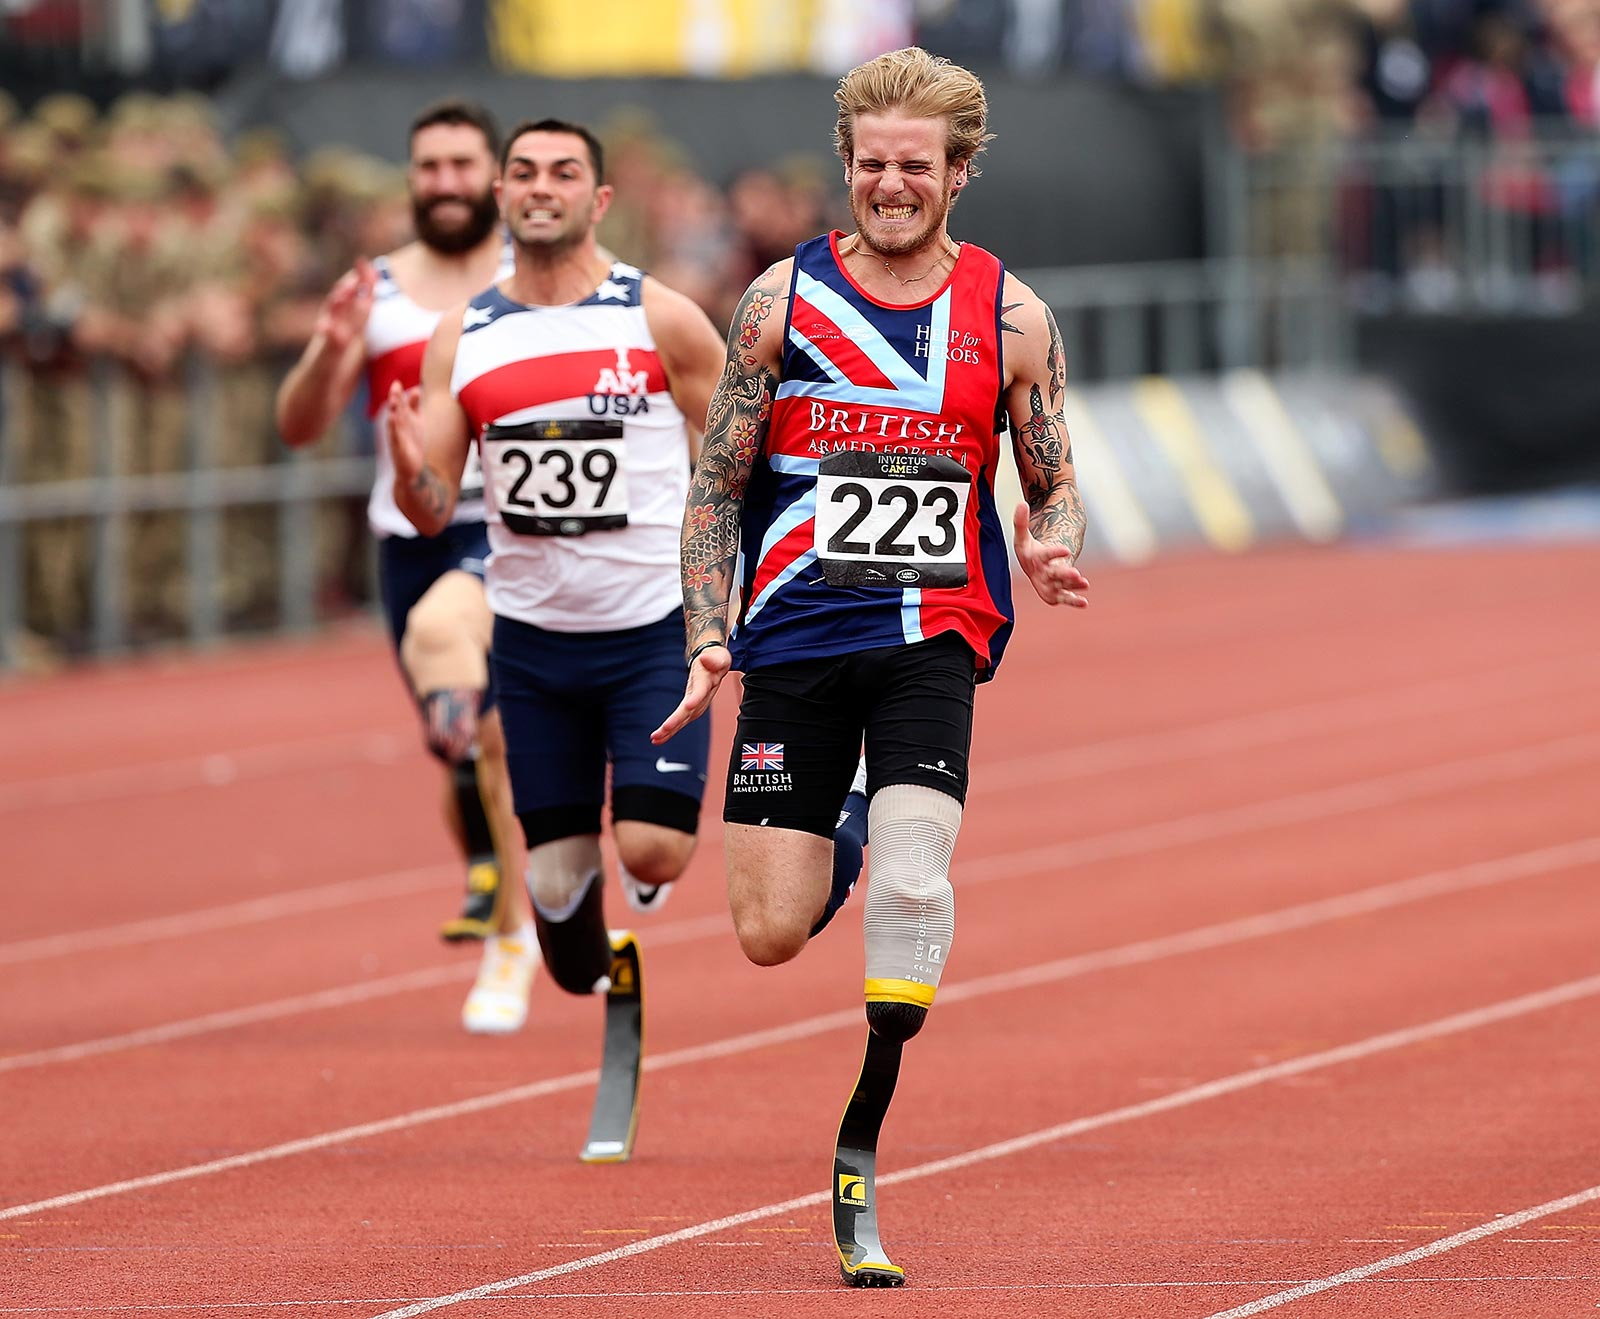 invictus games - photo #25